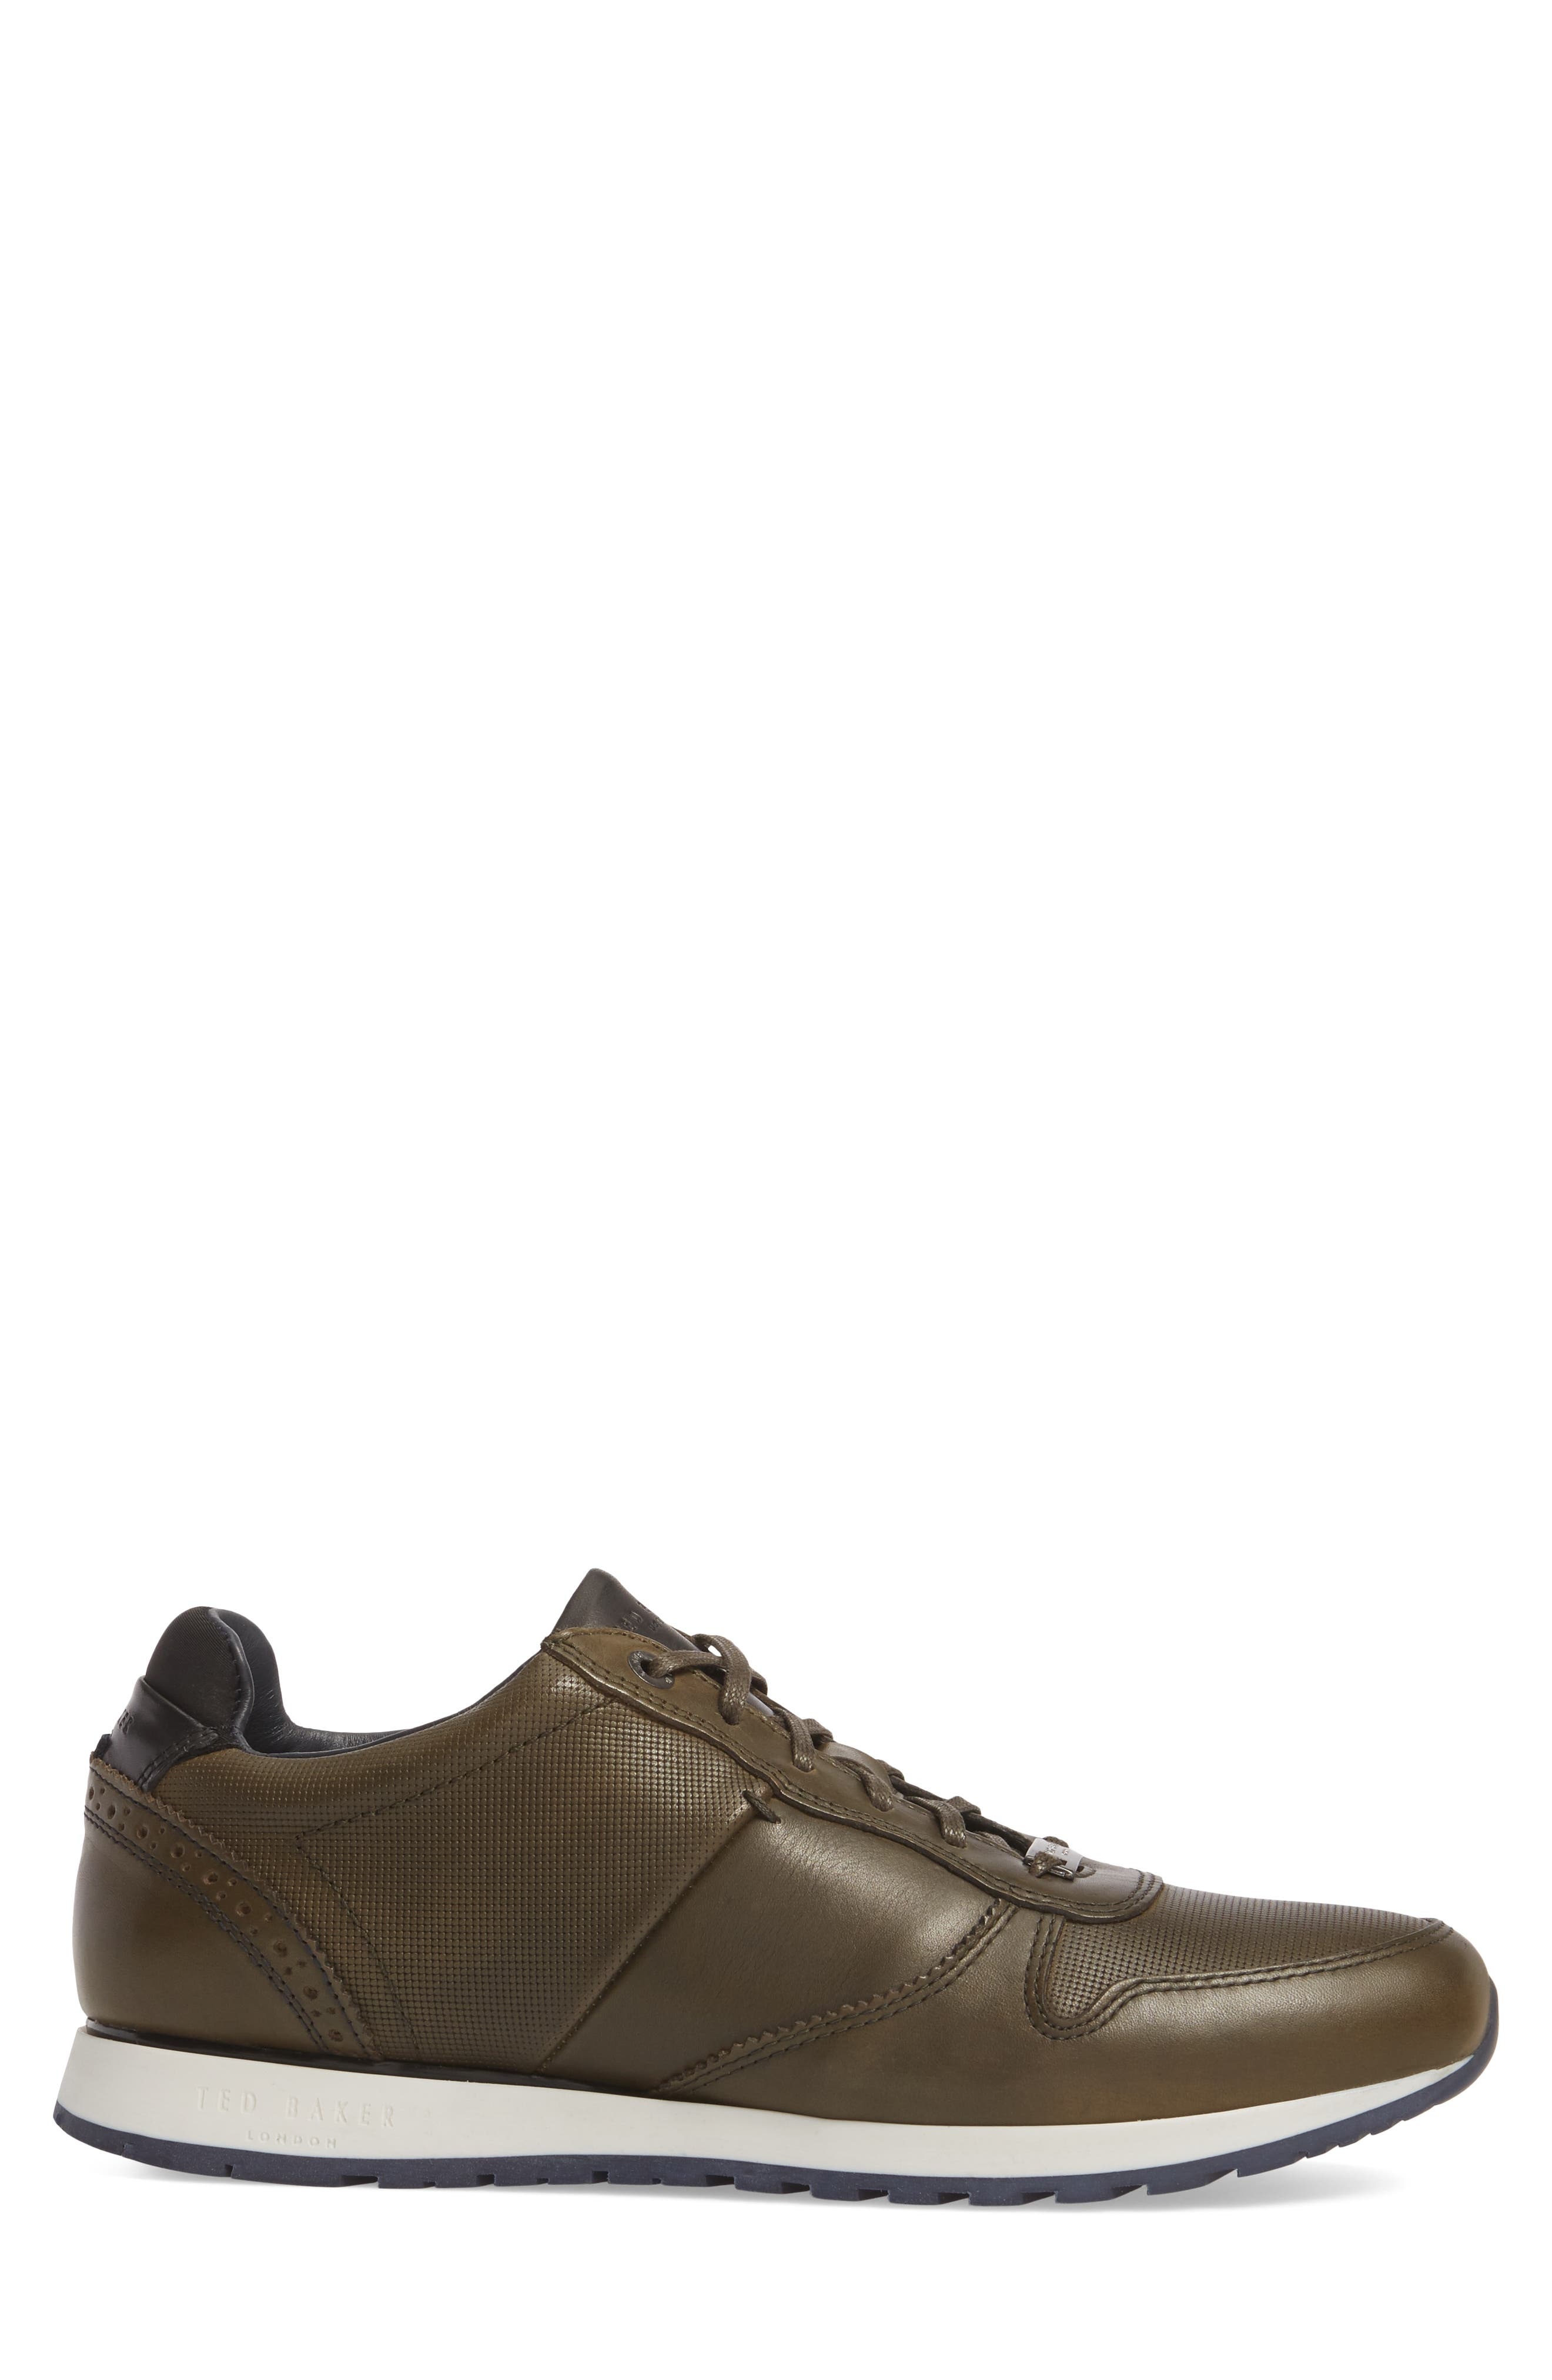 Alternate Image 3  - Ted Baker London Shindl Sneaker (Men)